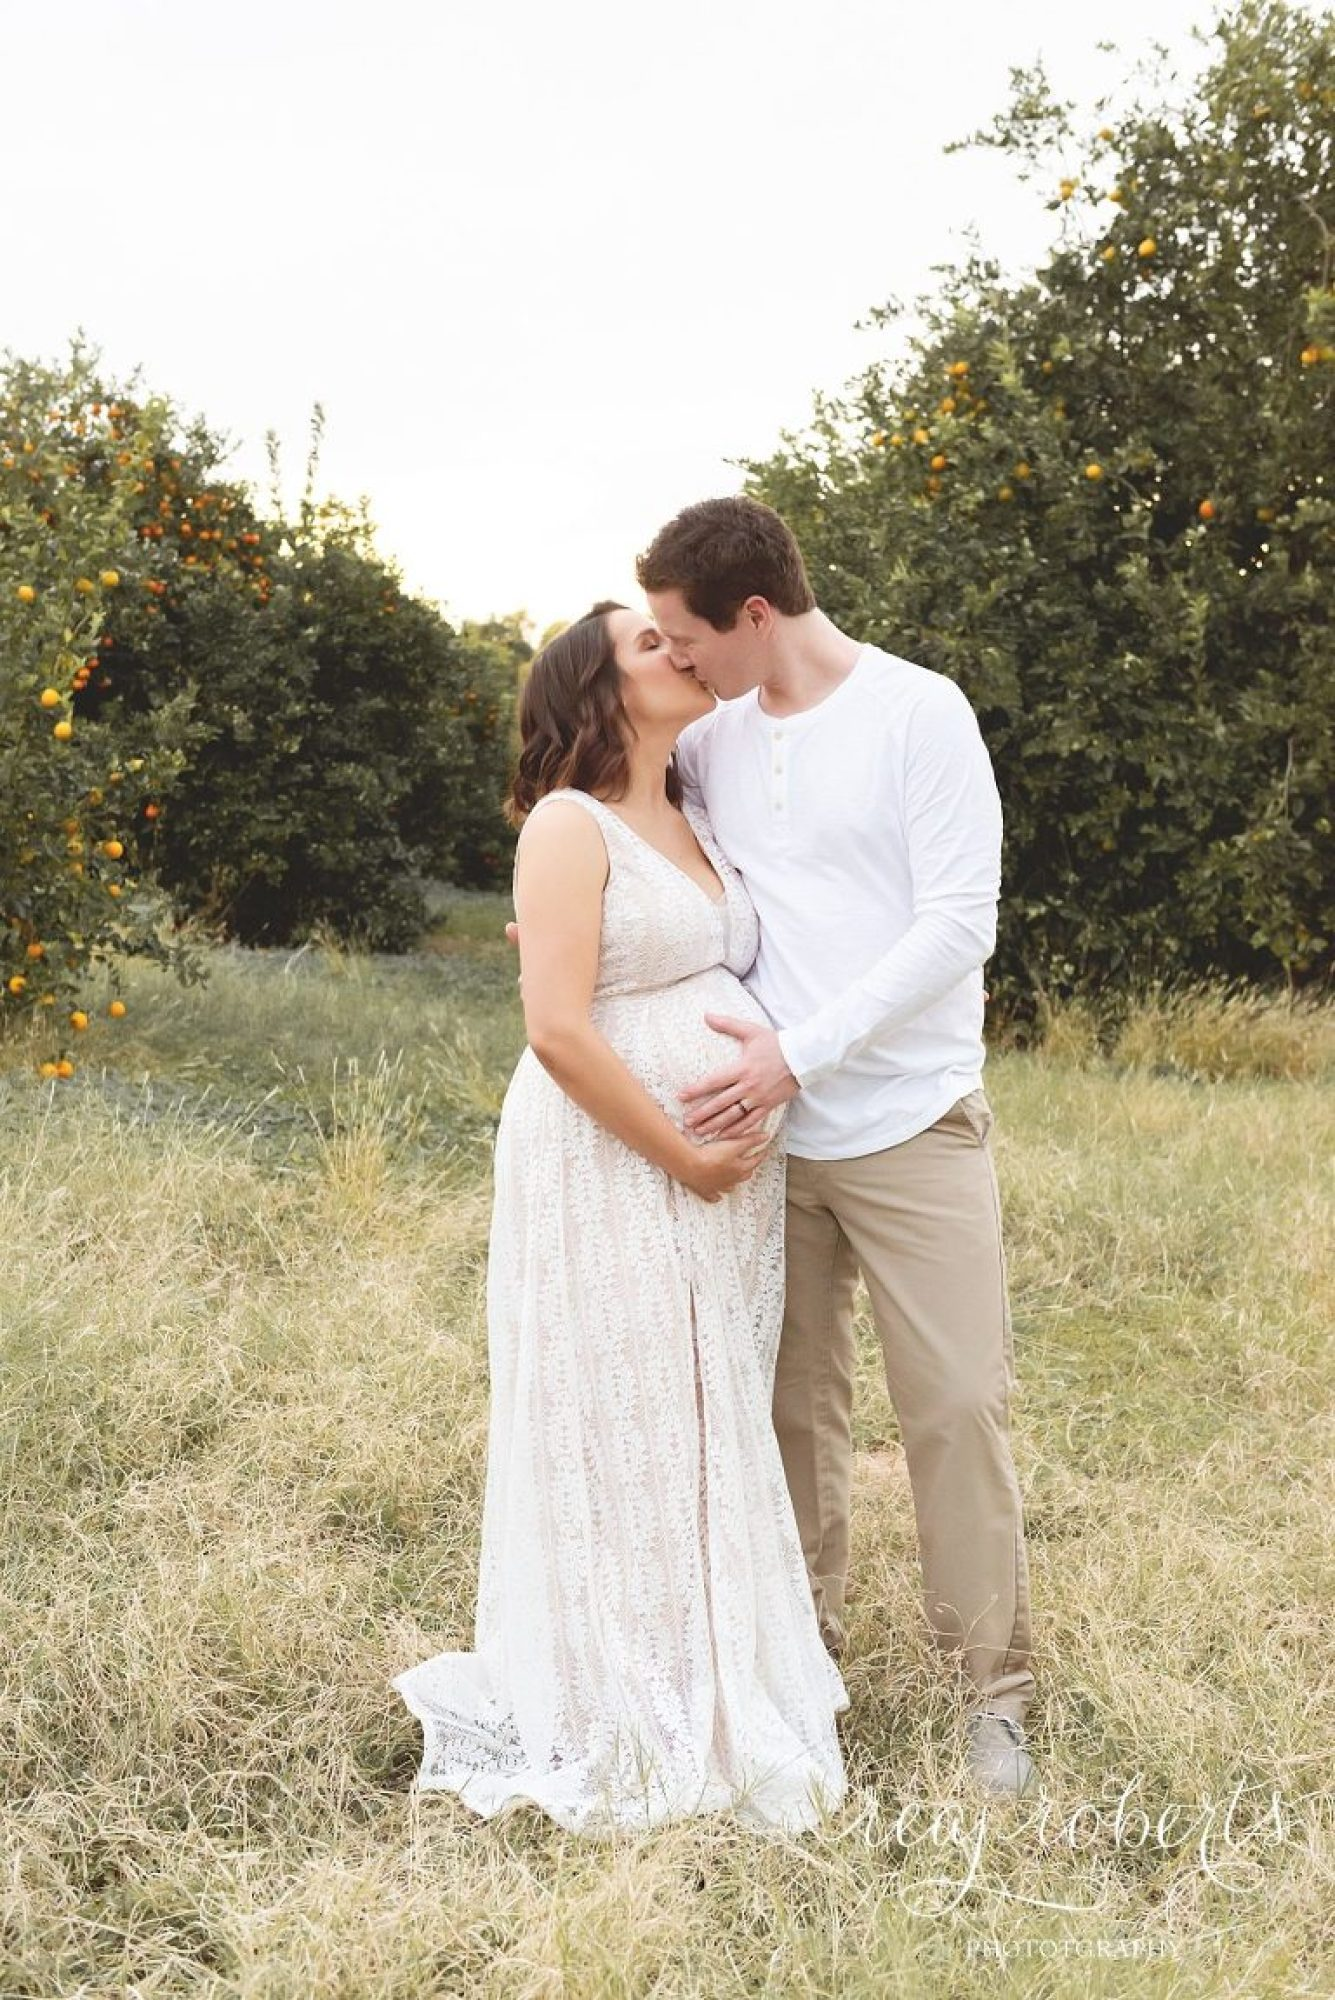 Chandler maternity photographer pregnancy photos in orange grove